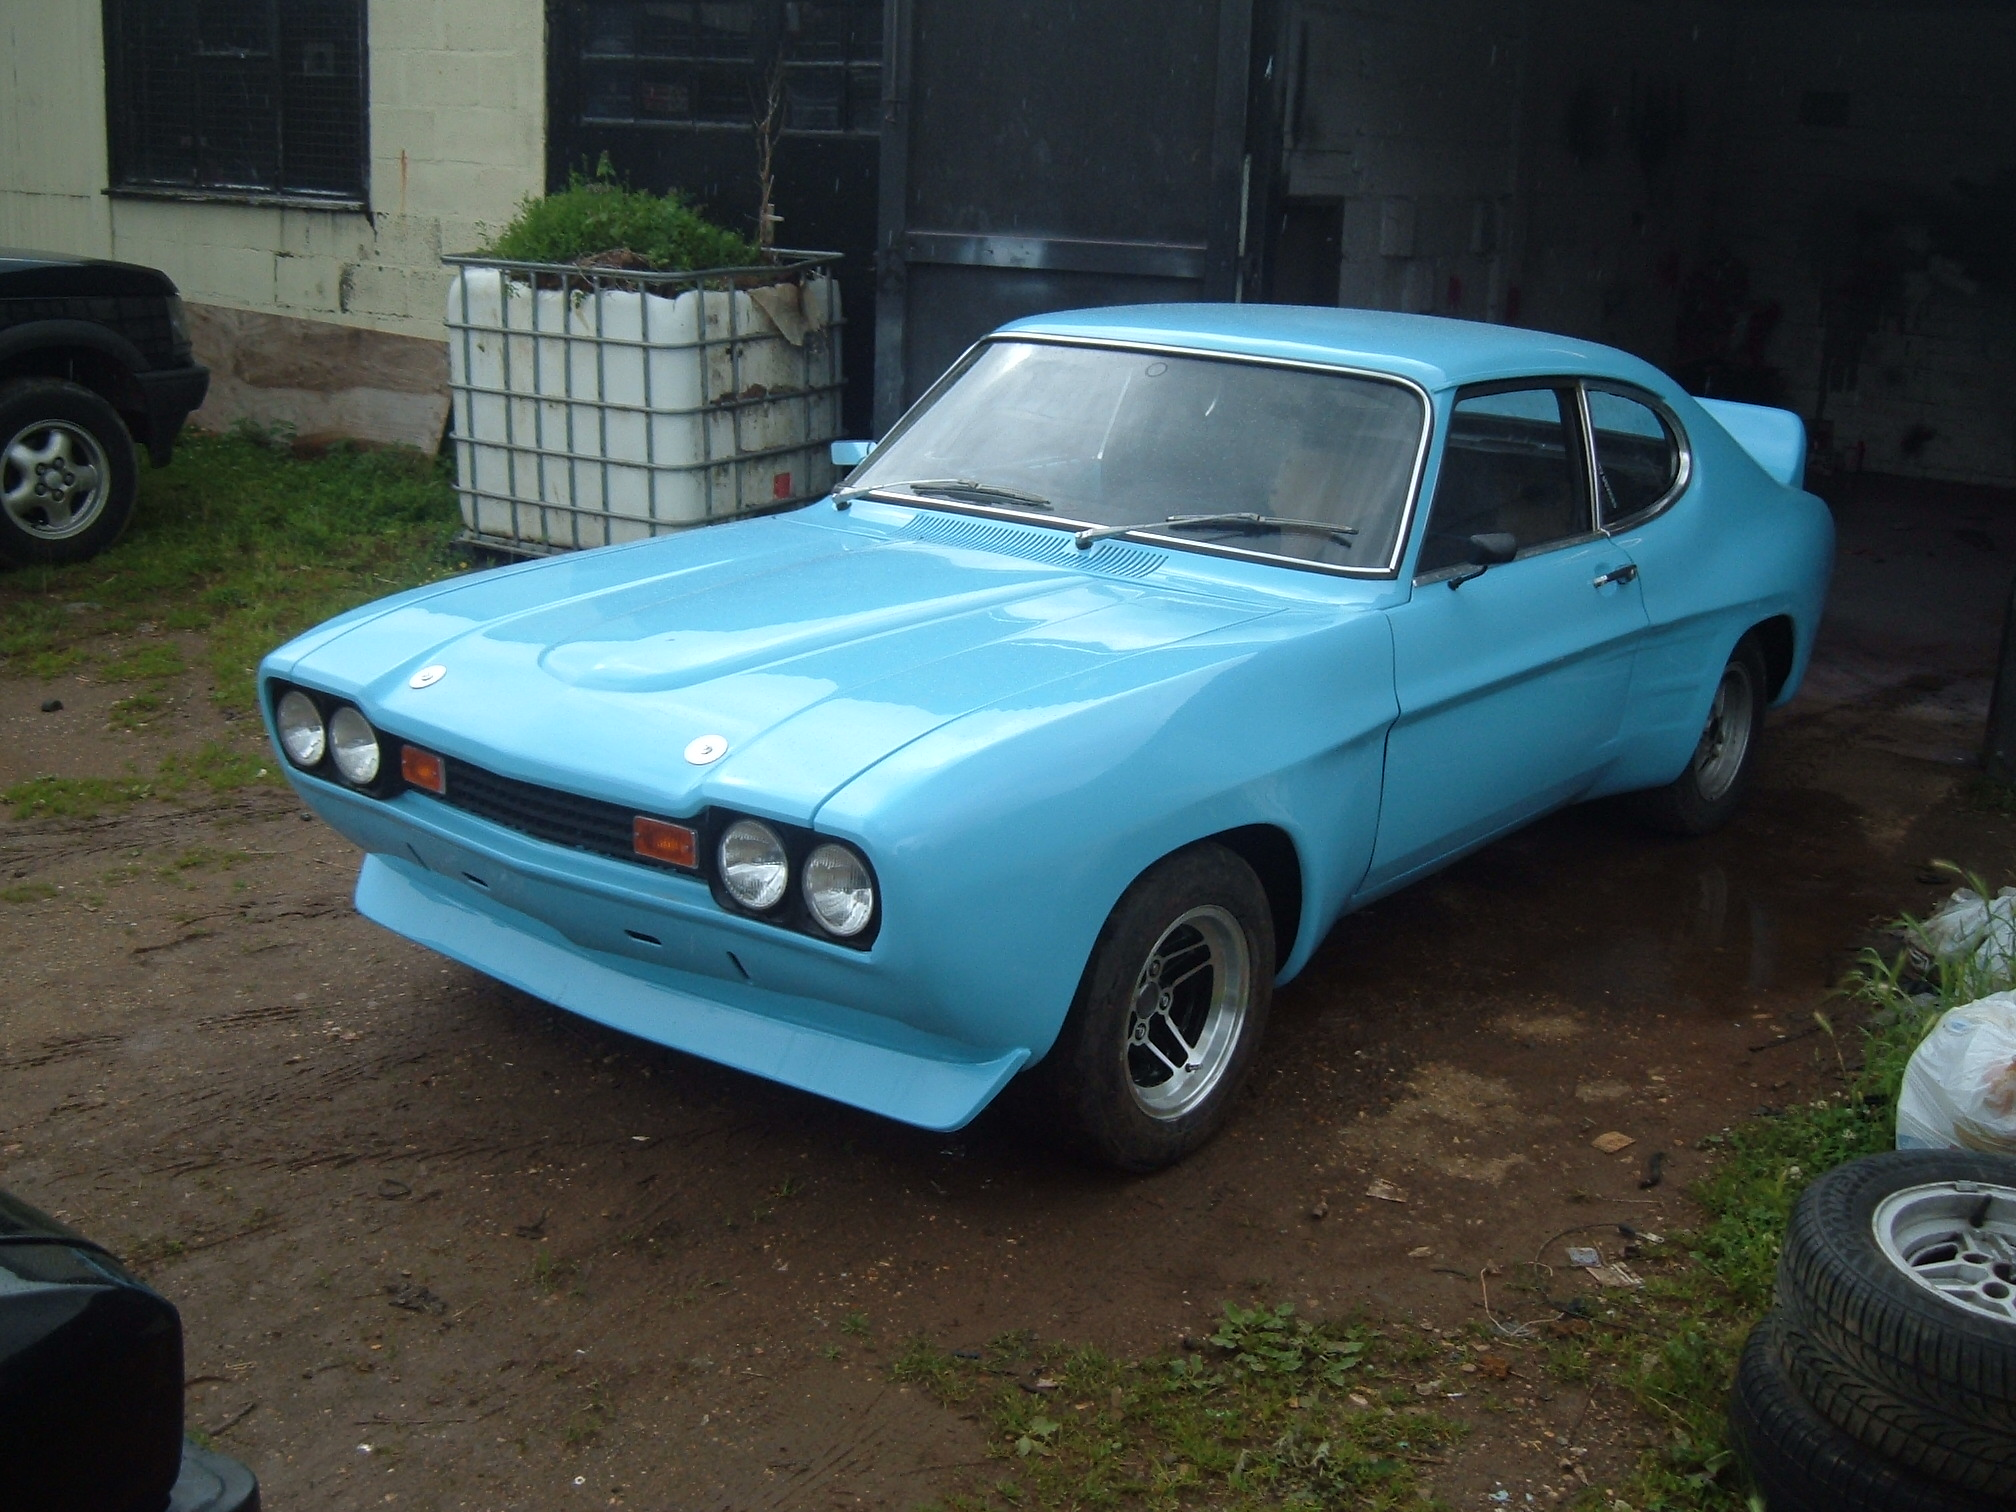 cologne arched 3 1 mk1 capri for sale